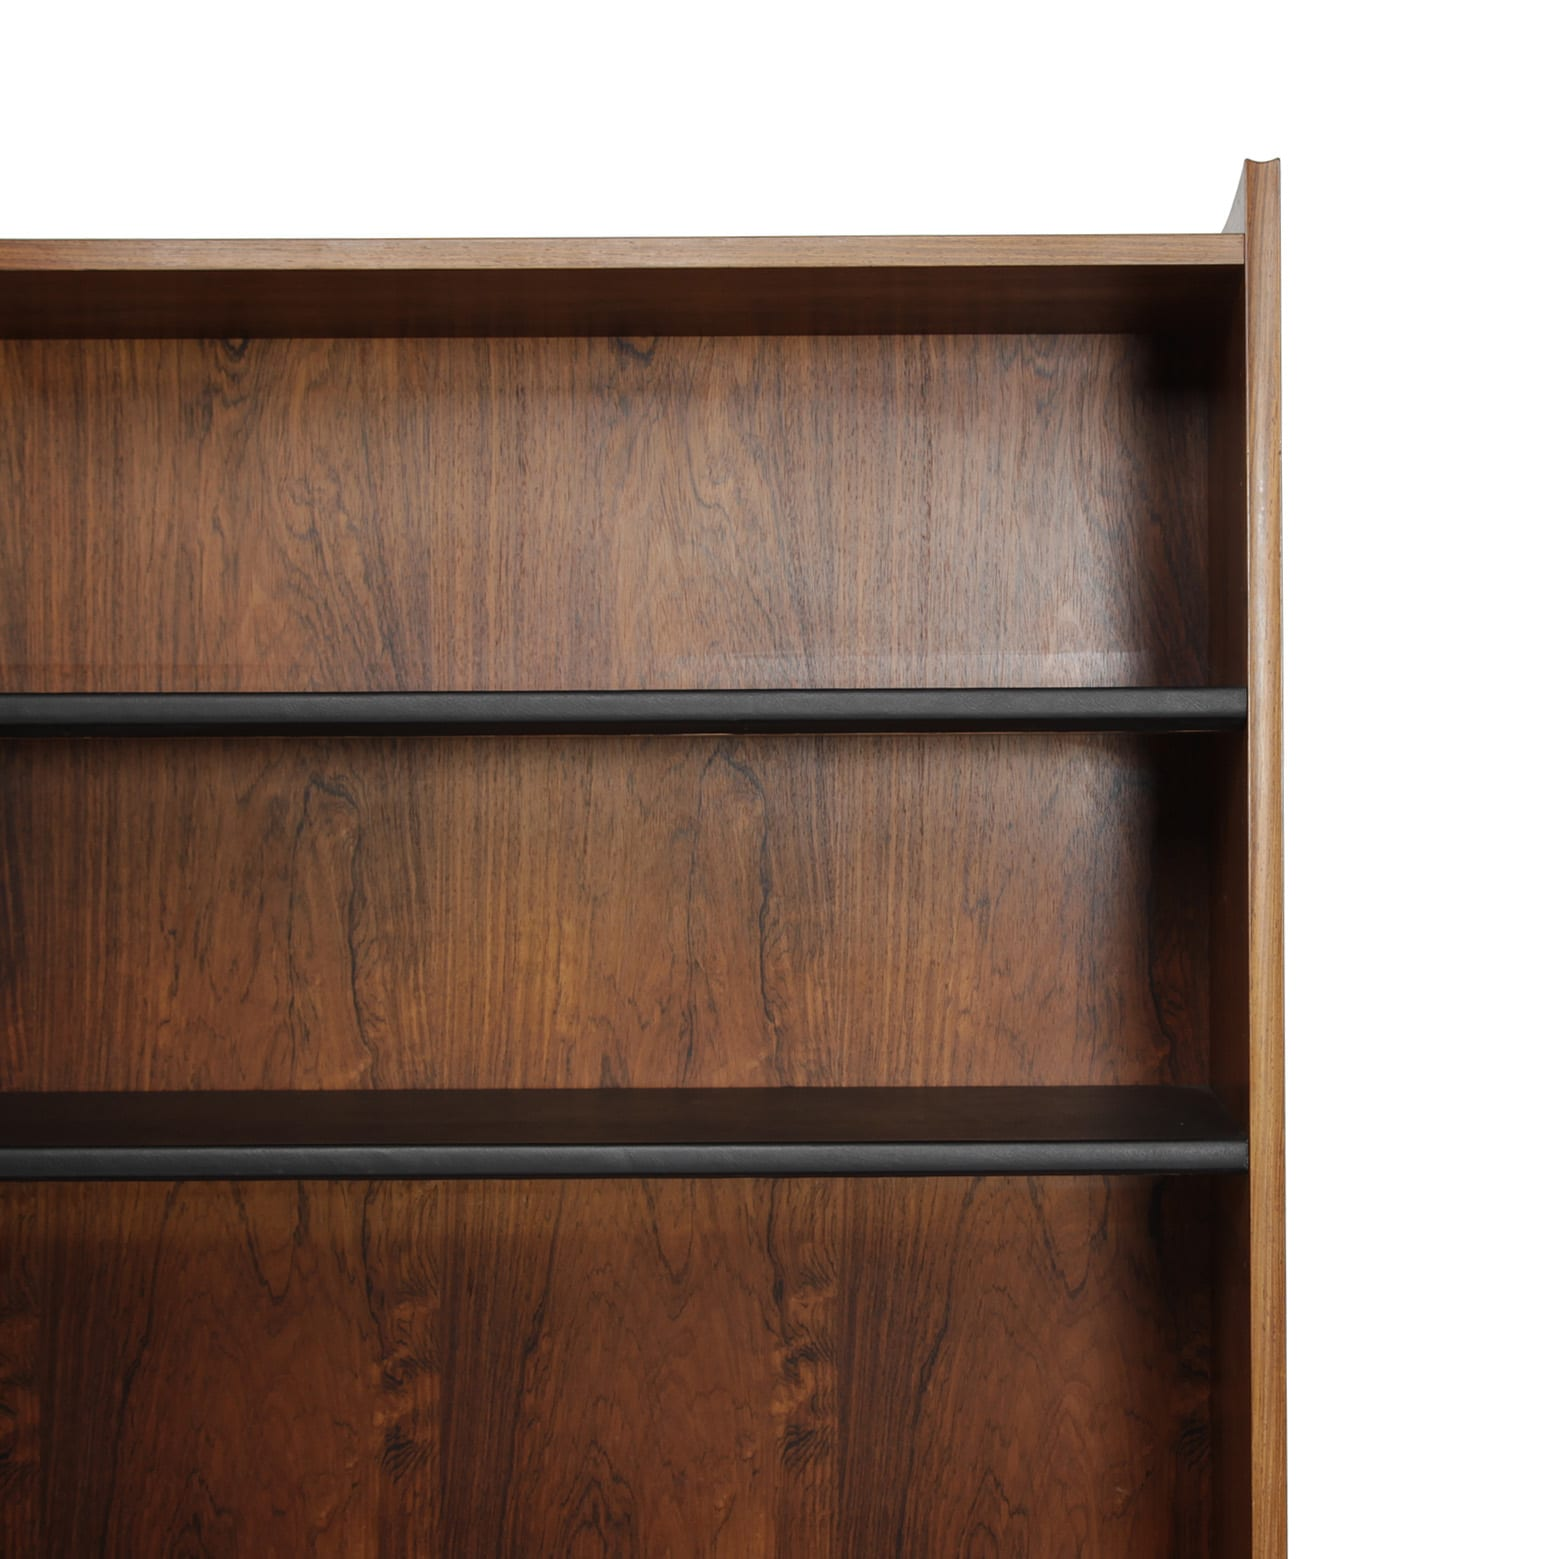 Bookcase with leather covered shelves